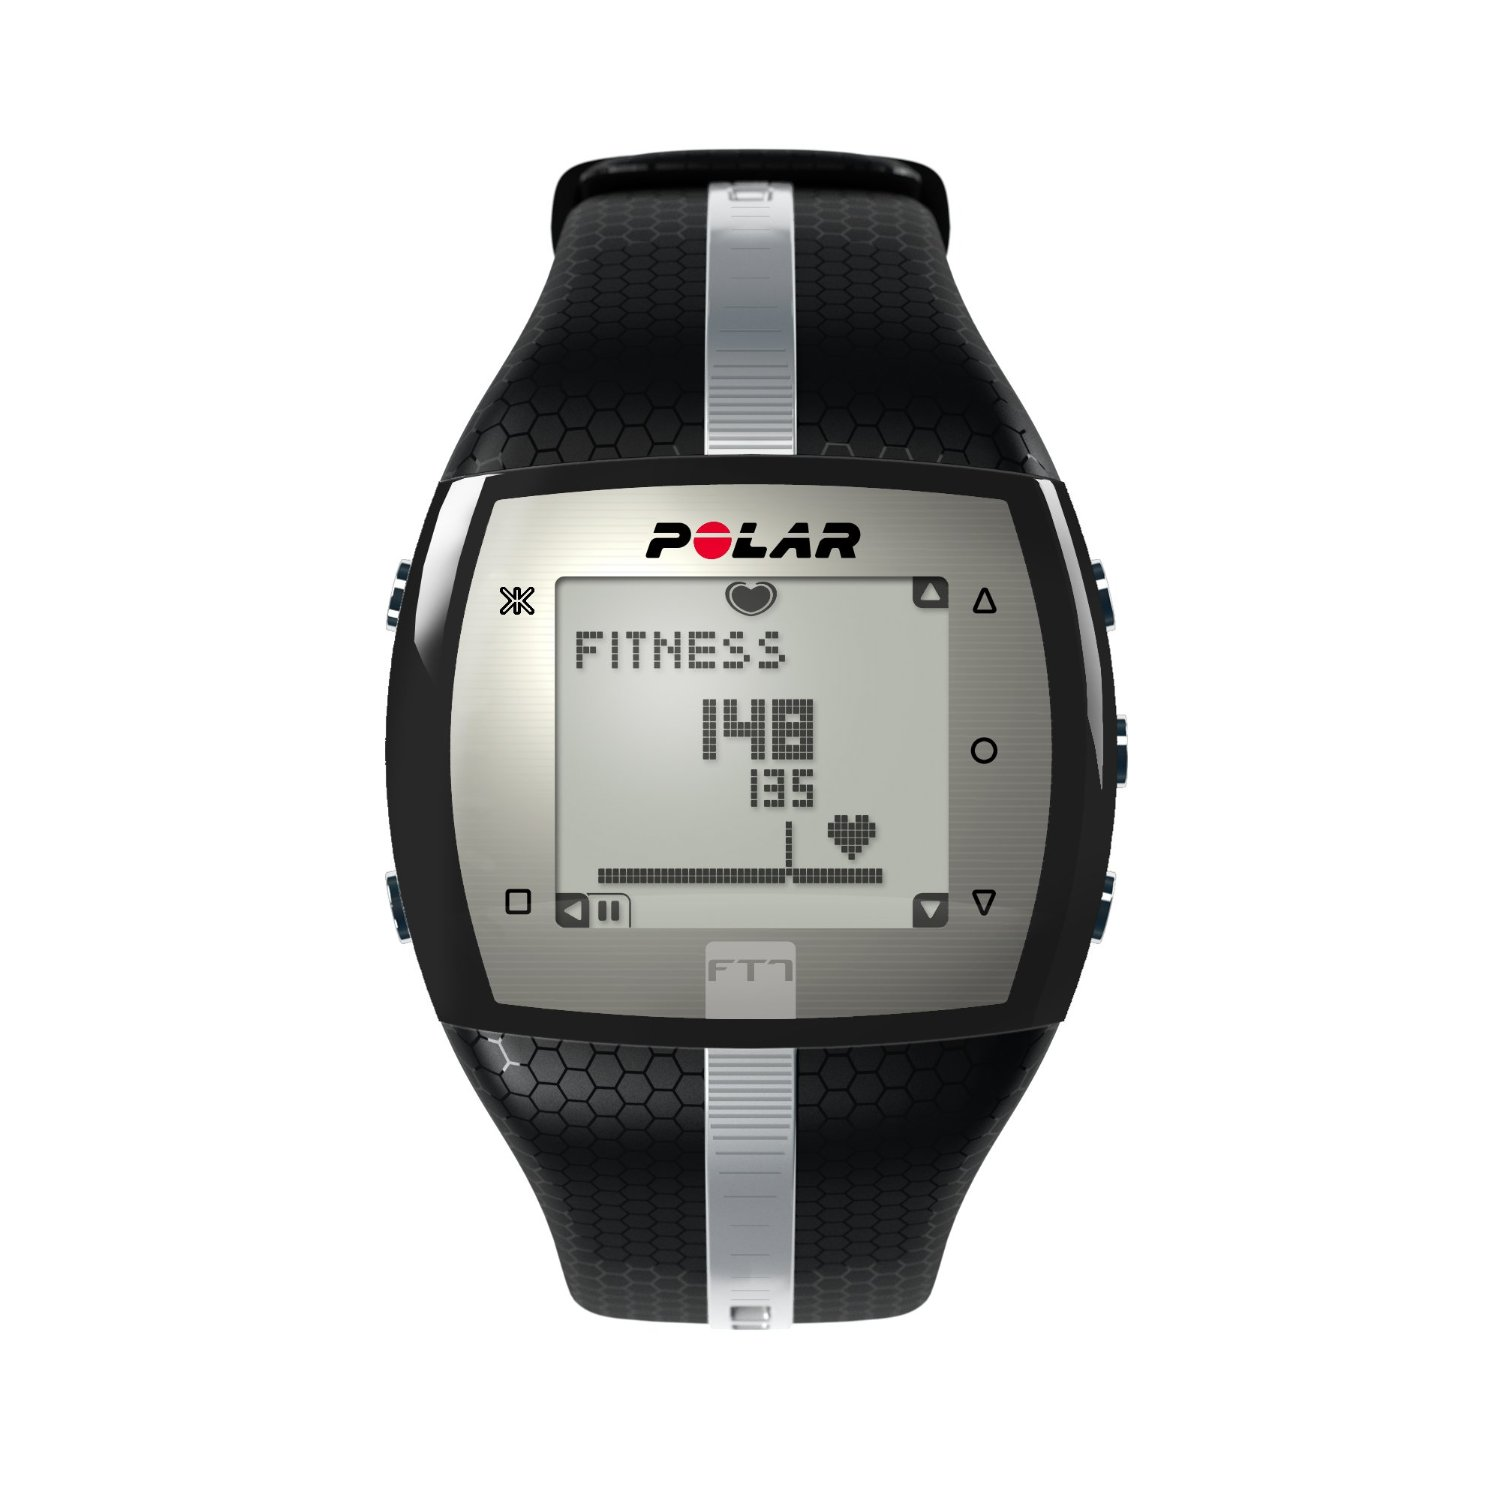 Polar FT7 Workout Watch with Heart Rate Monitor